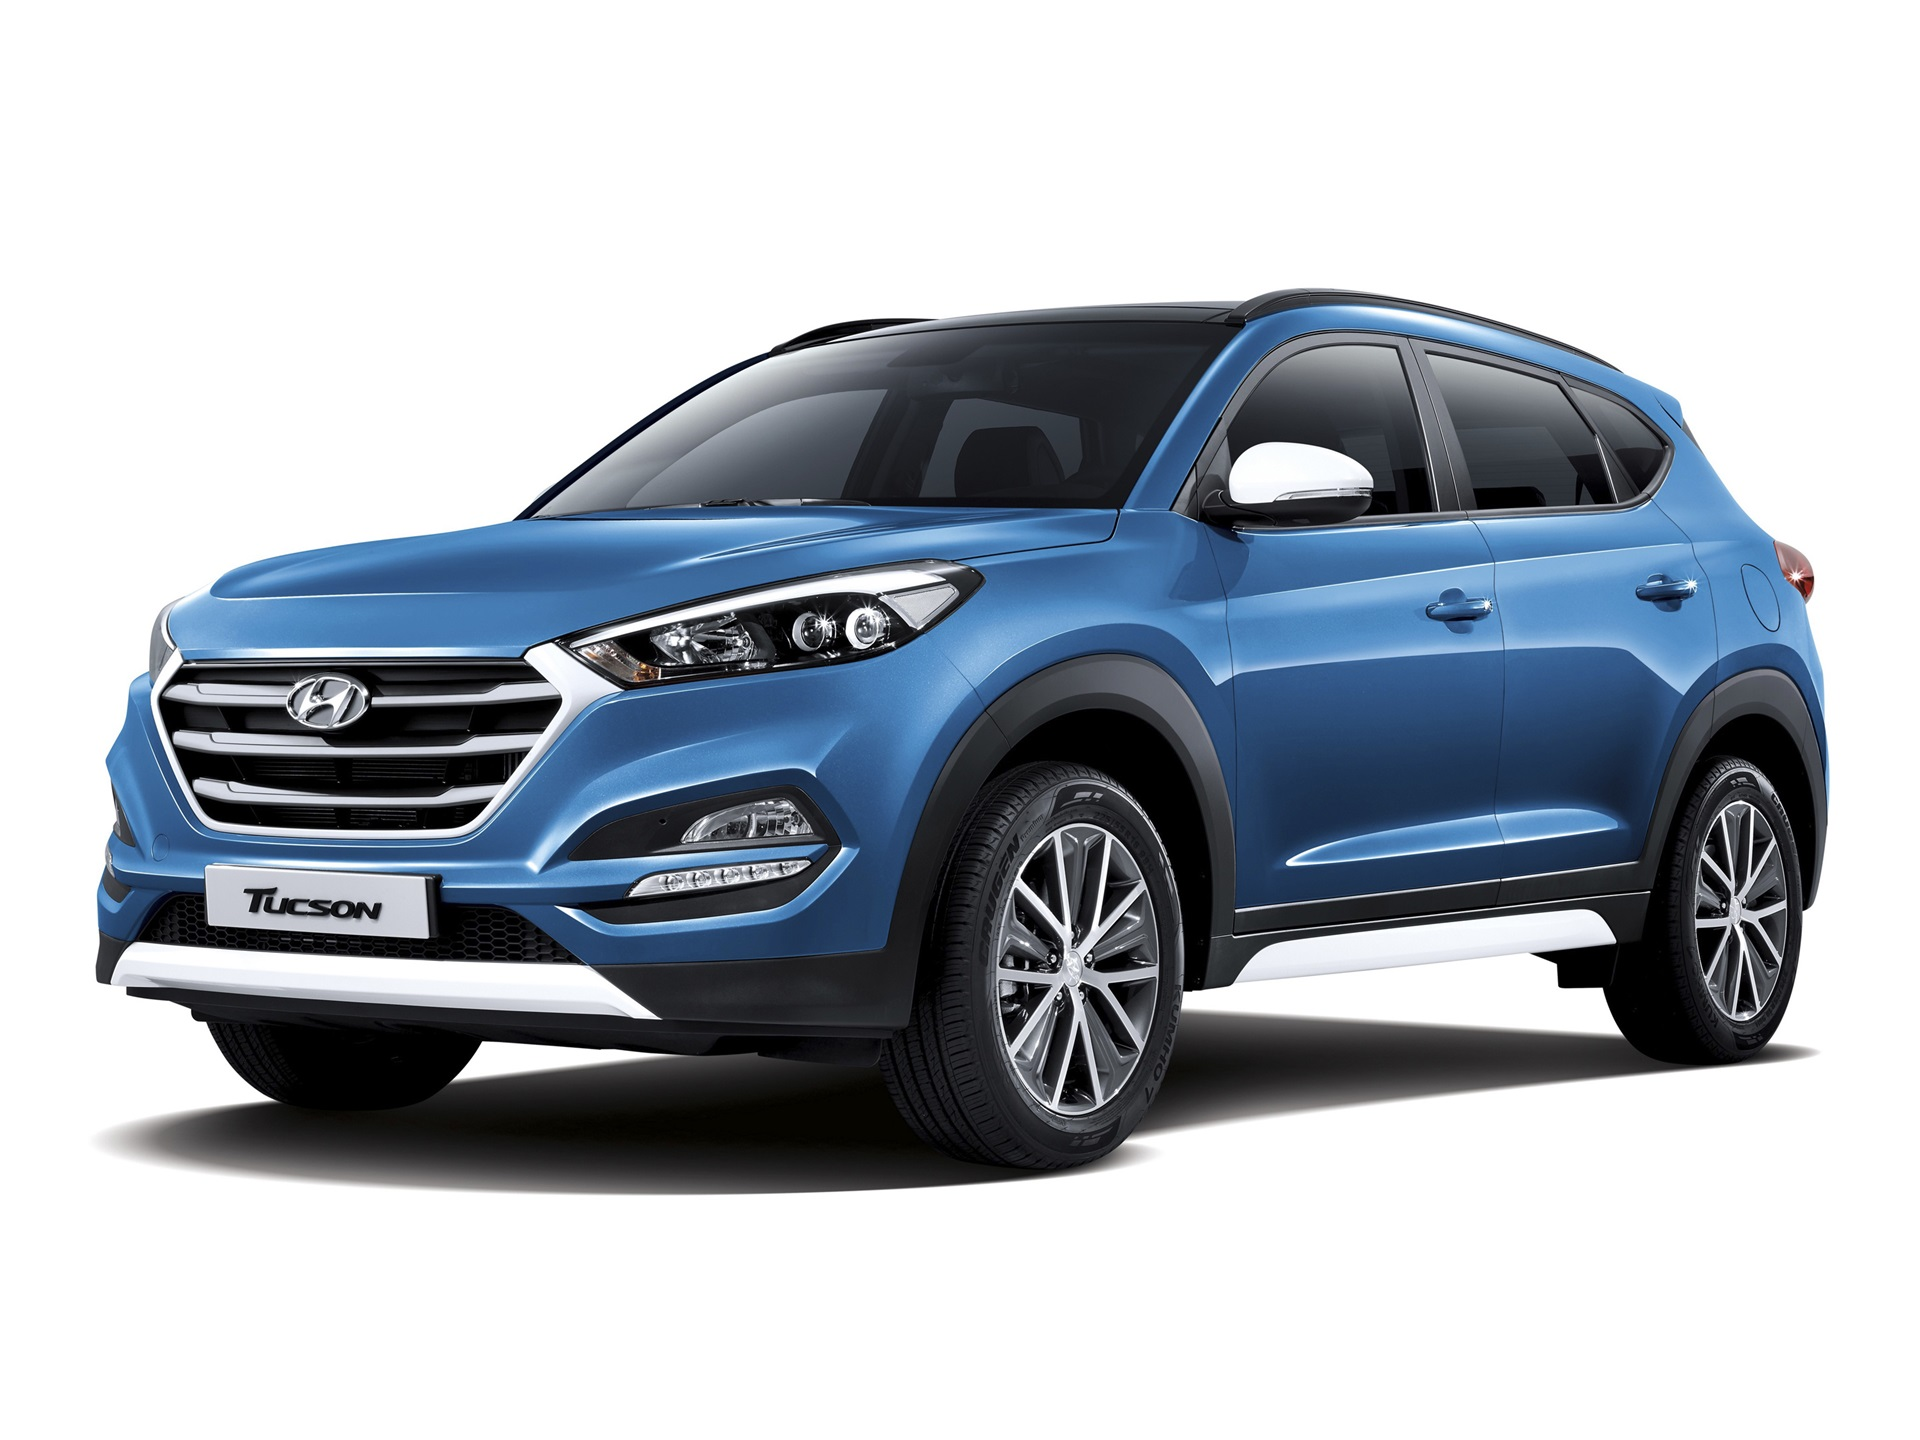 hyundai tucson blau suv auto 3840x2160 uhd 4k hintergrundbilder hd bild. Black Bedroom Furniture Sets. Home Design Ideas